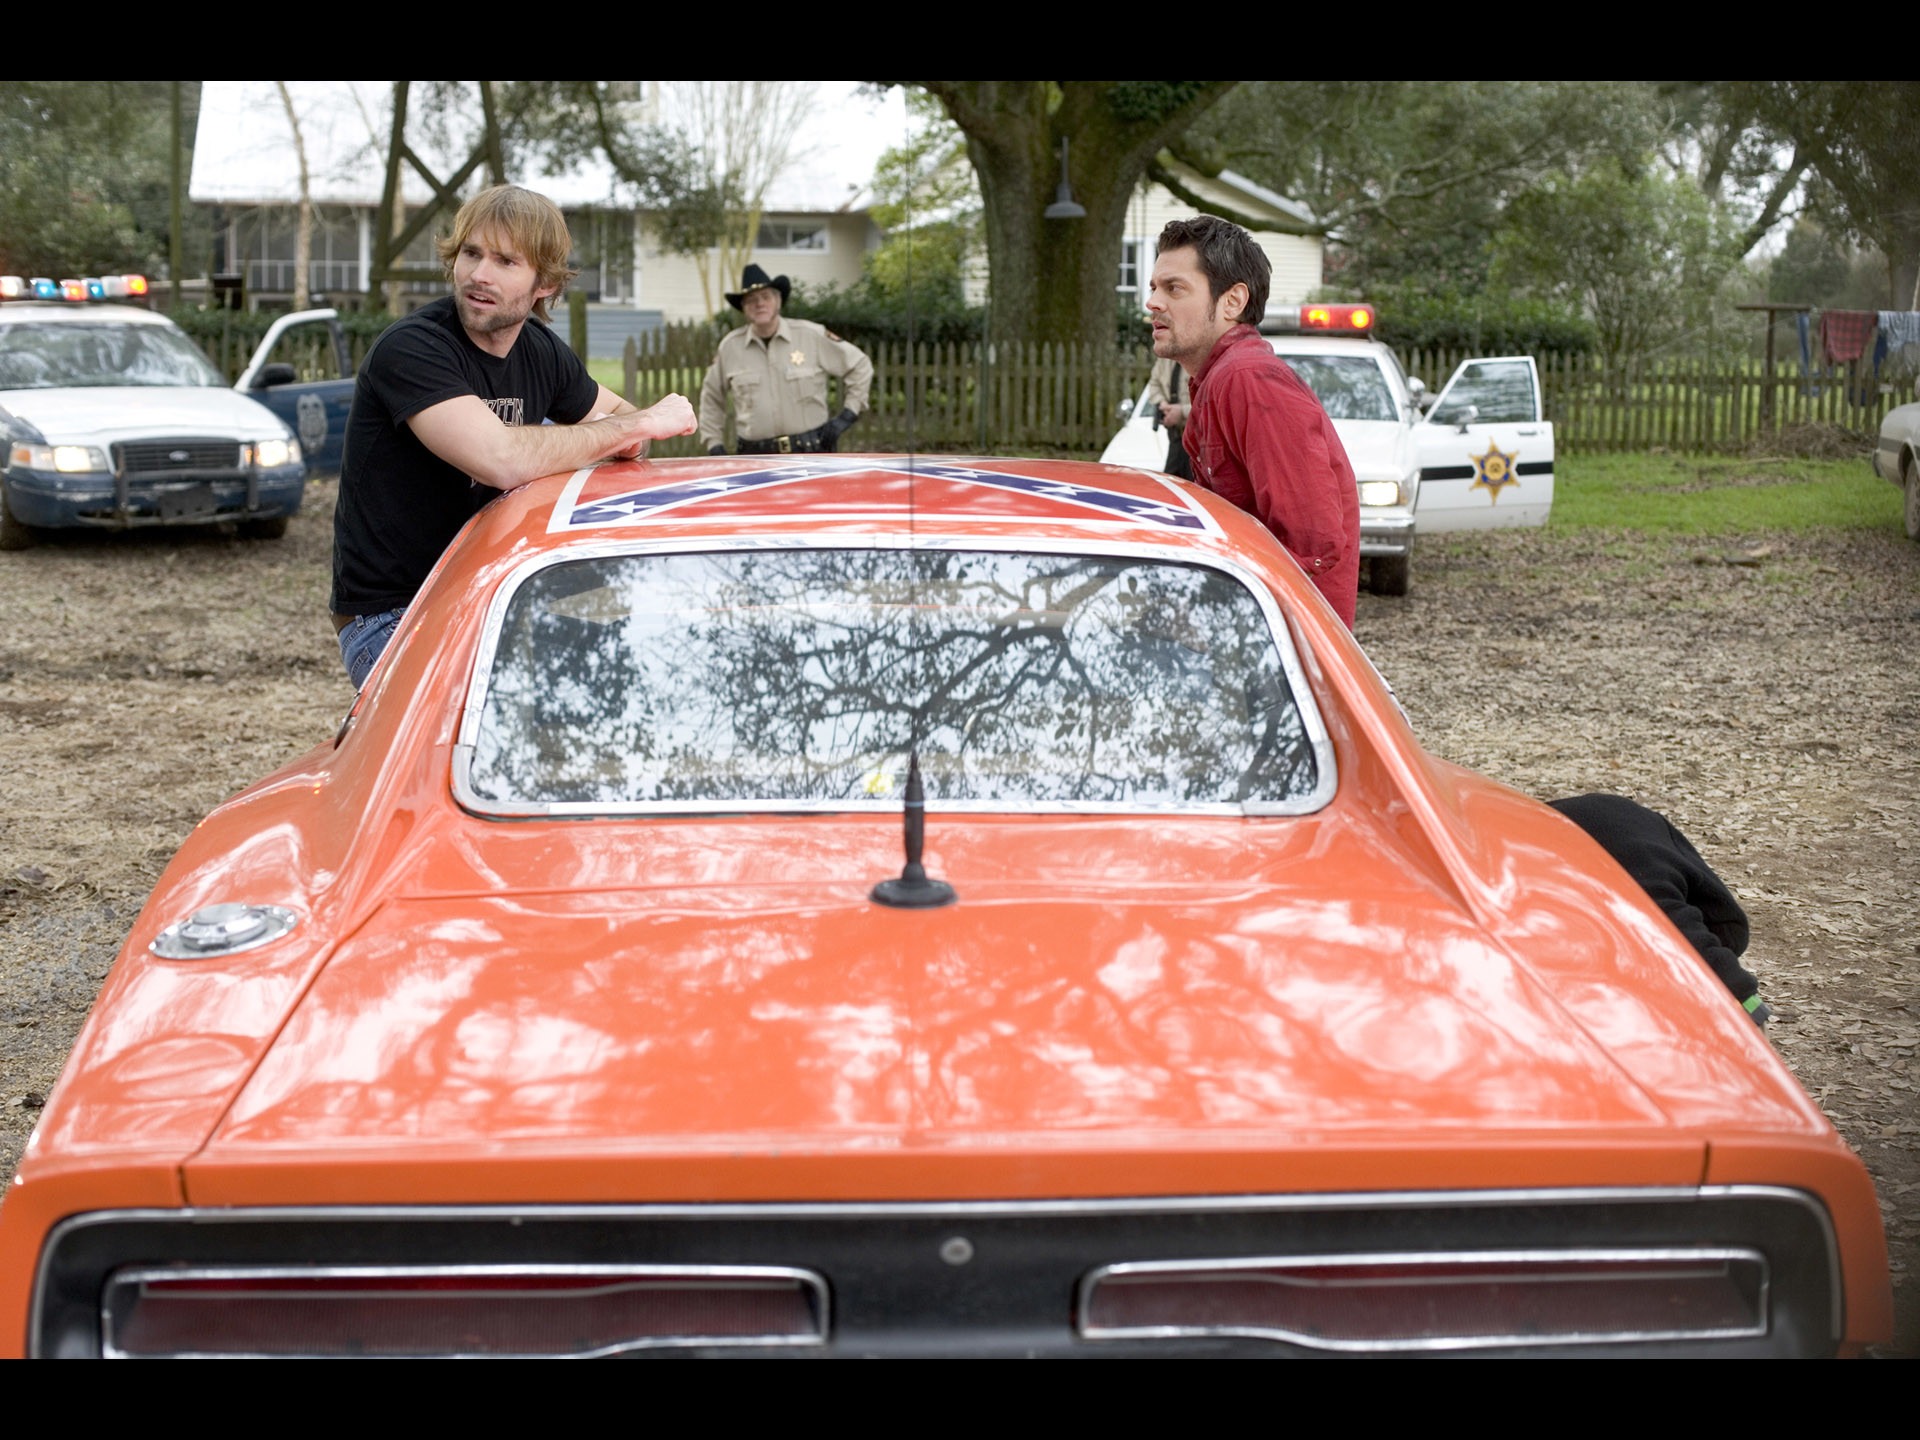 "1920x1440 1969 Dodge Charger - General Lee from "" The Dukes of Hazzard"" Movie - Rear  - Seann William Scott & Johnny Knoxville -  Wallpaper"